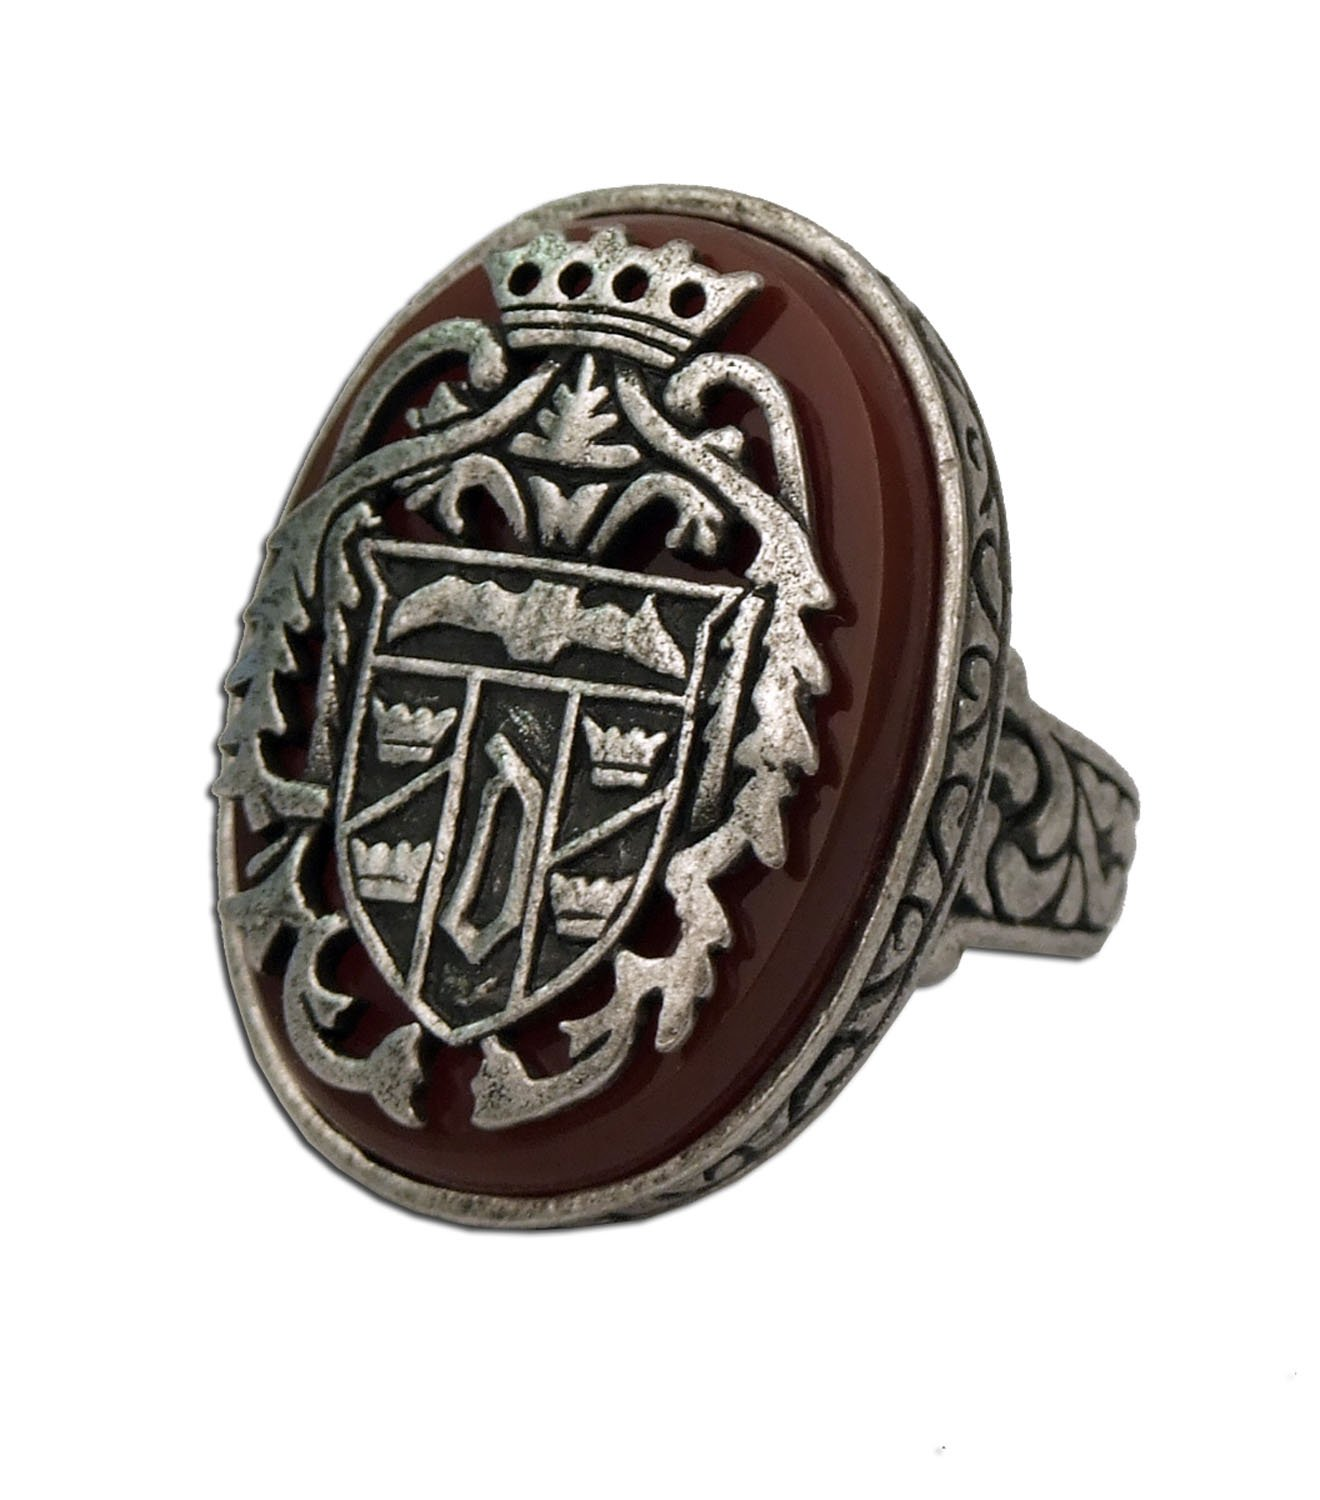 The Ring of Dracula Elite Edition Prop Replica